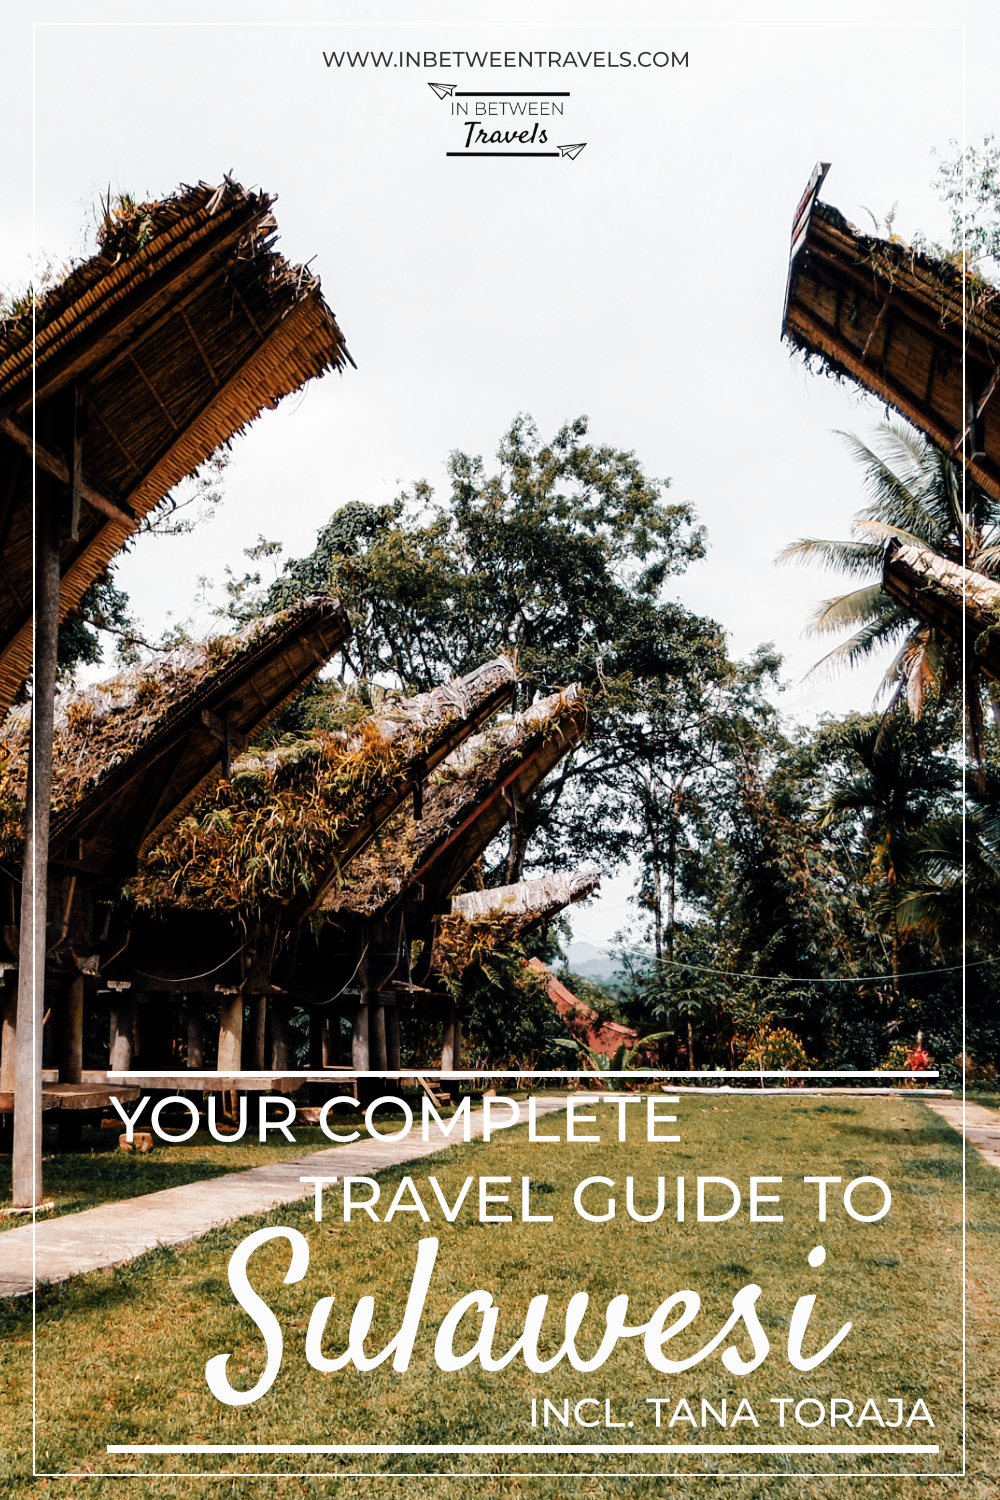 Travel Guide to Sulawesi, Indonesia